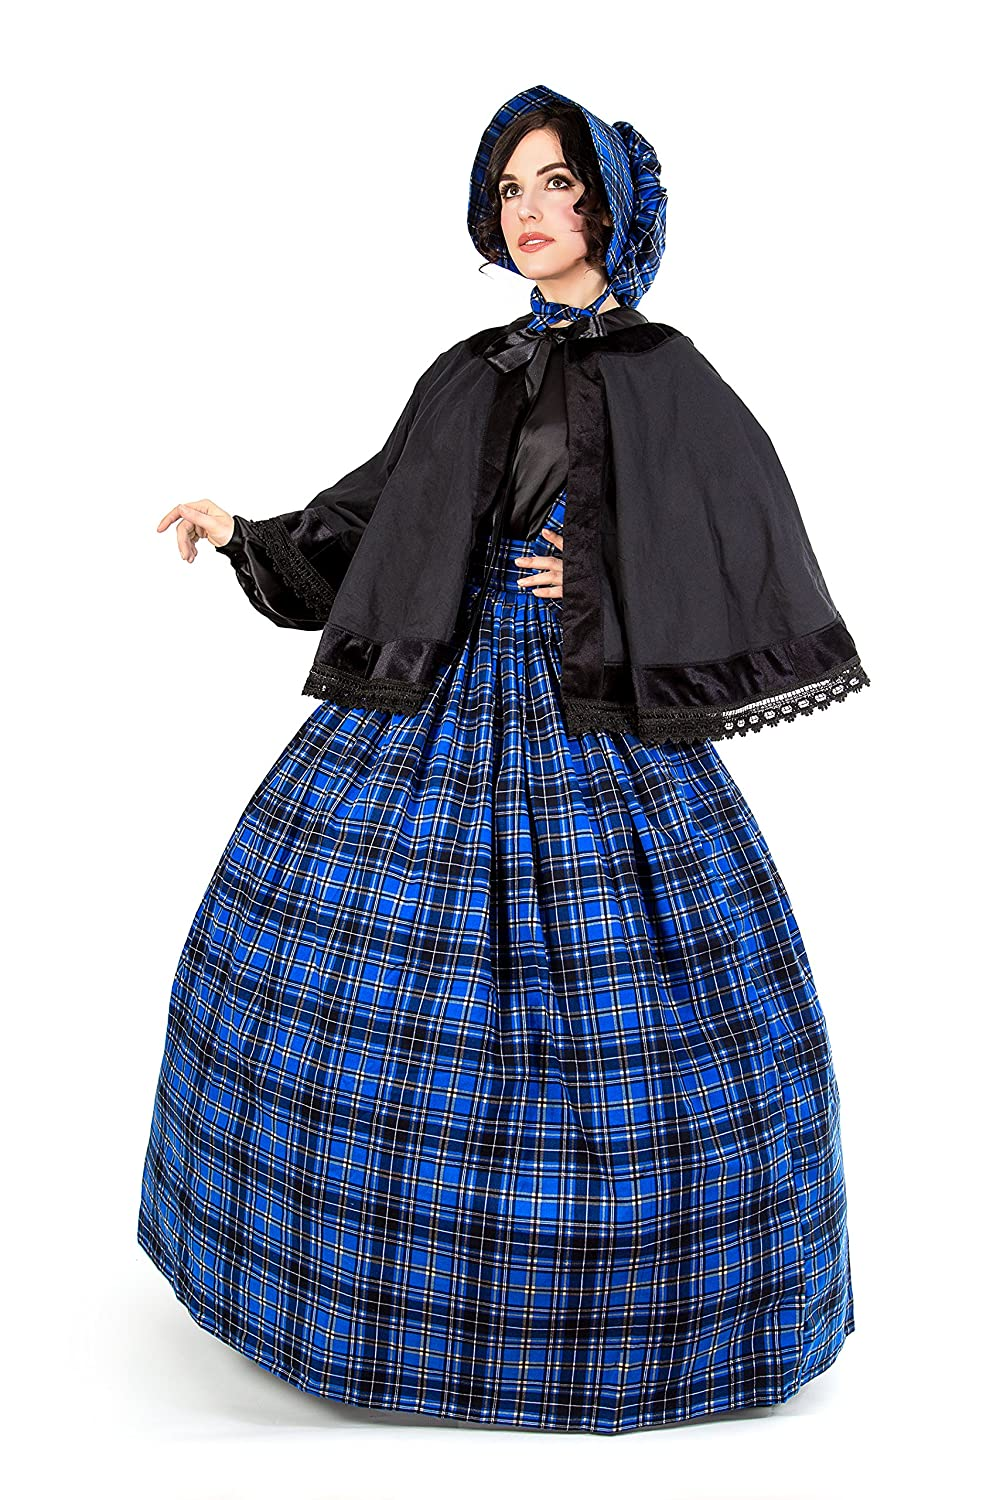 Old Fashioned Dresses | Old Dress Styles Reminisce Plaid Tartan Dickens Civil War Costume $89.99 AT vintagedancer.com